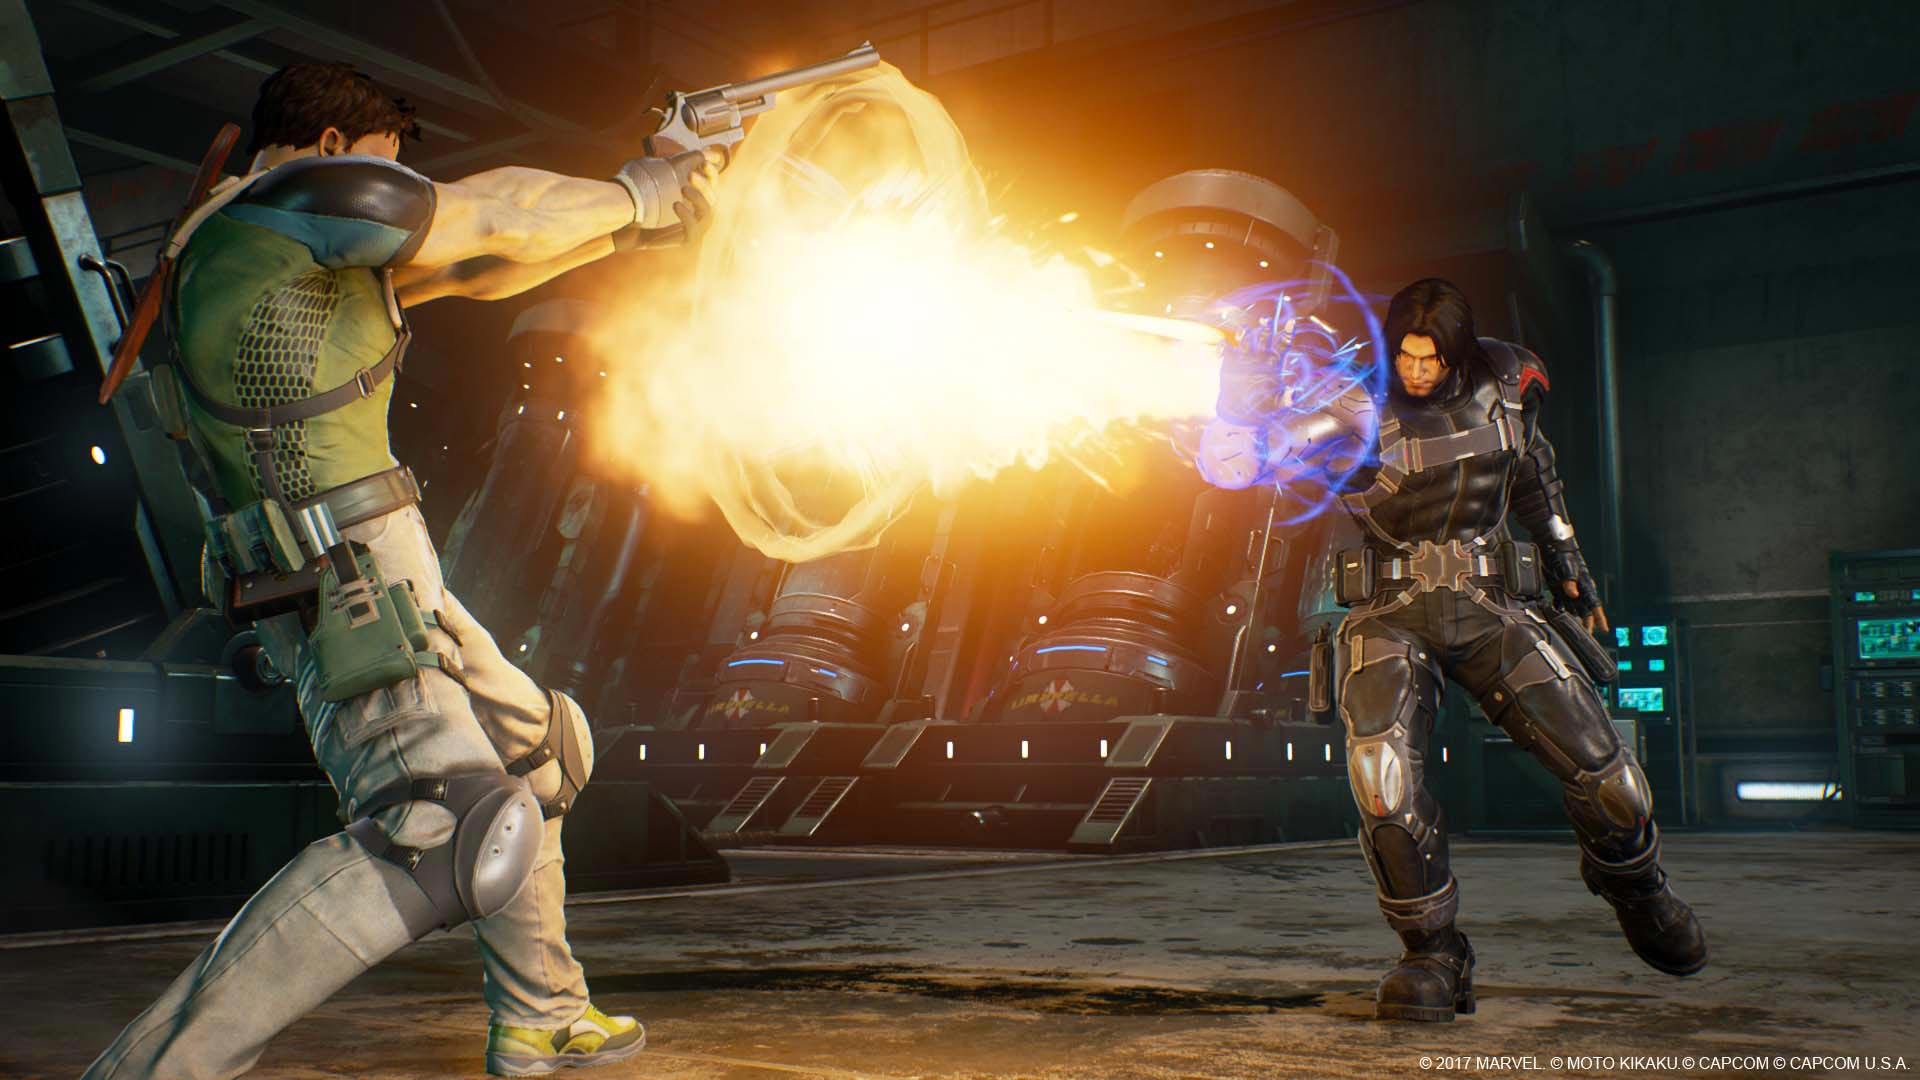 Venom, Black Widow, and Winter Solider in Marvel vs. Capcom: Infinite screenshots 4 out of 13 image gallery